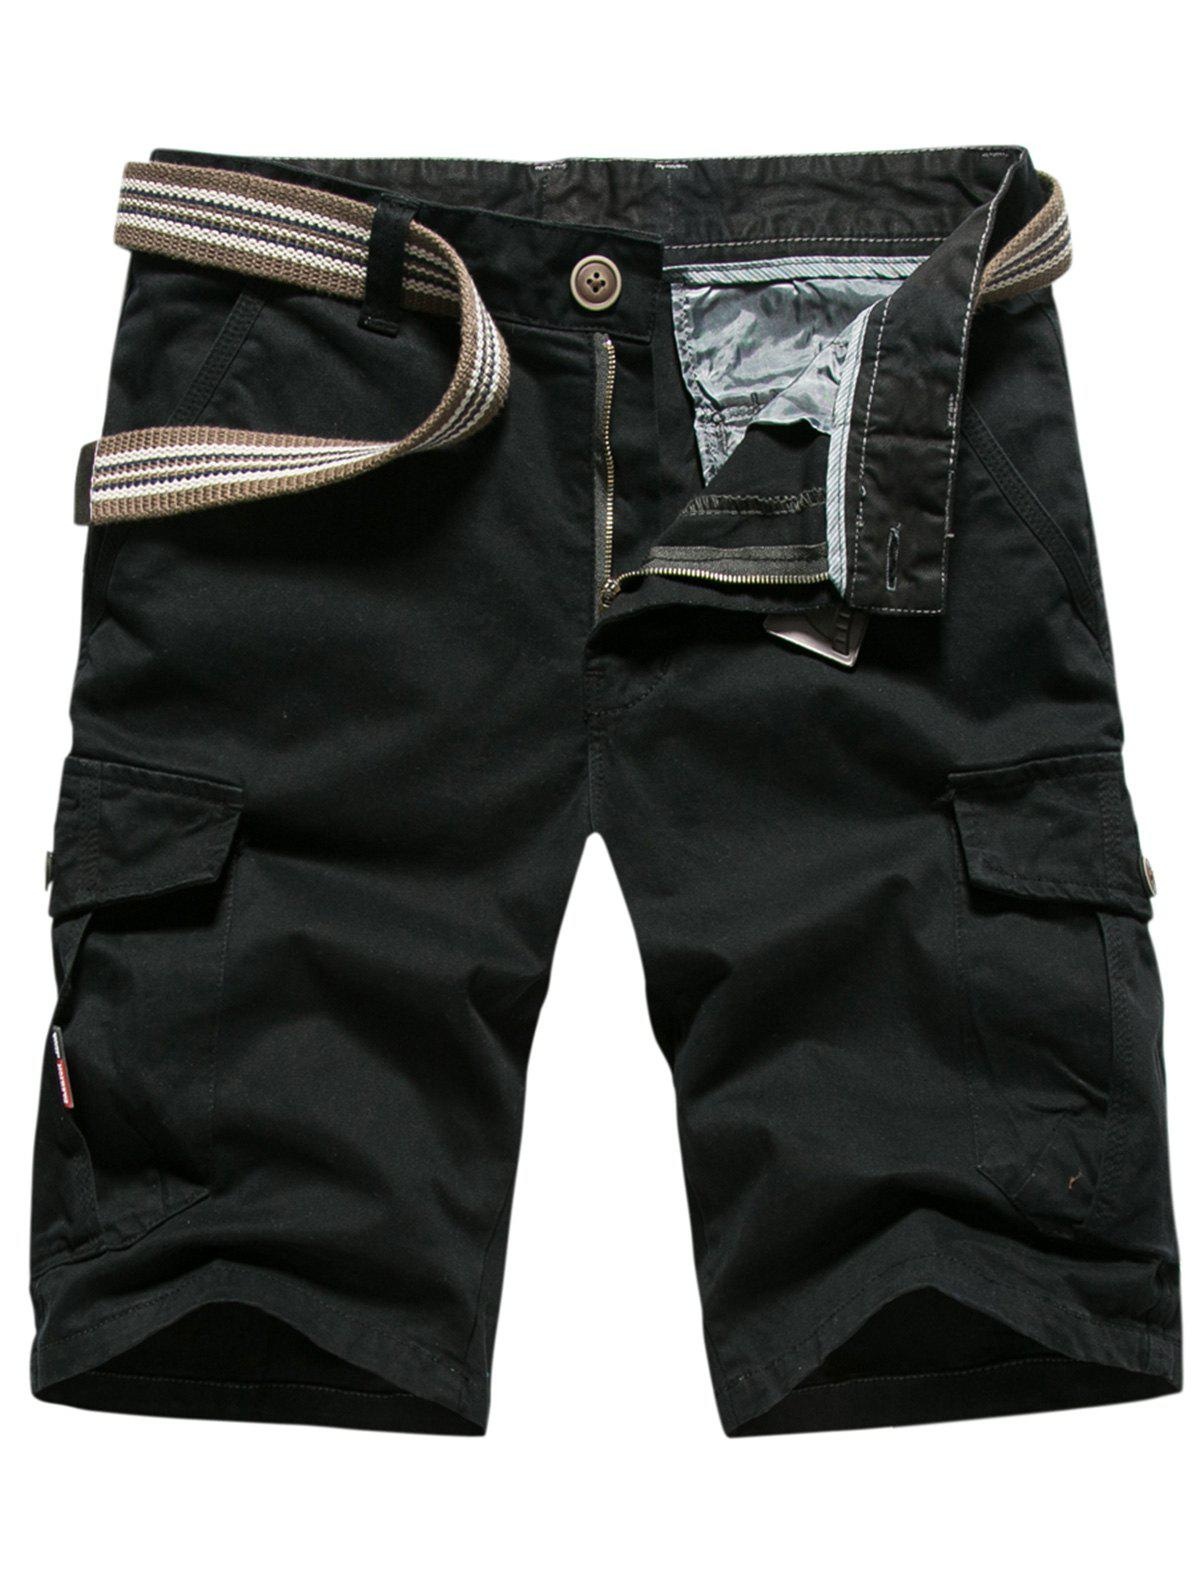 Chic Loose-fitting Casual Cargo Shorts